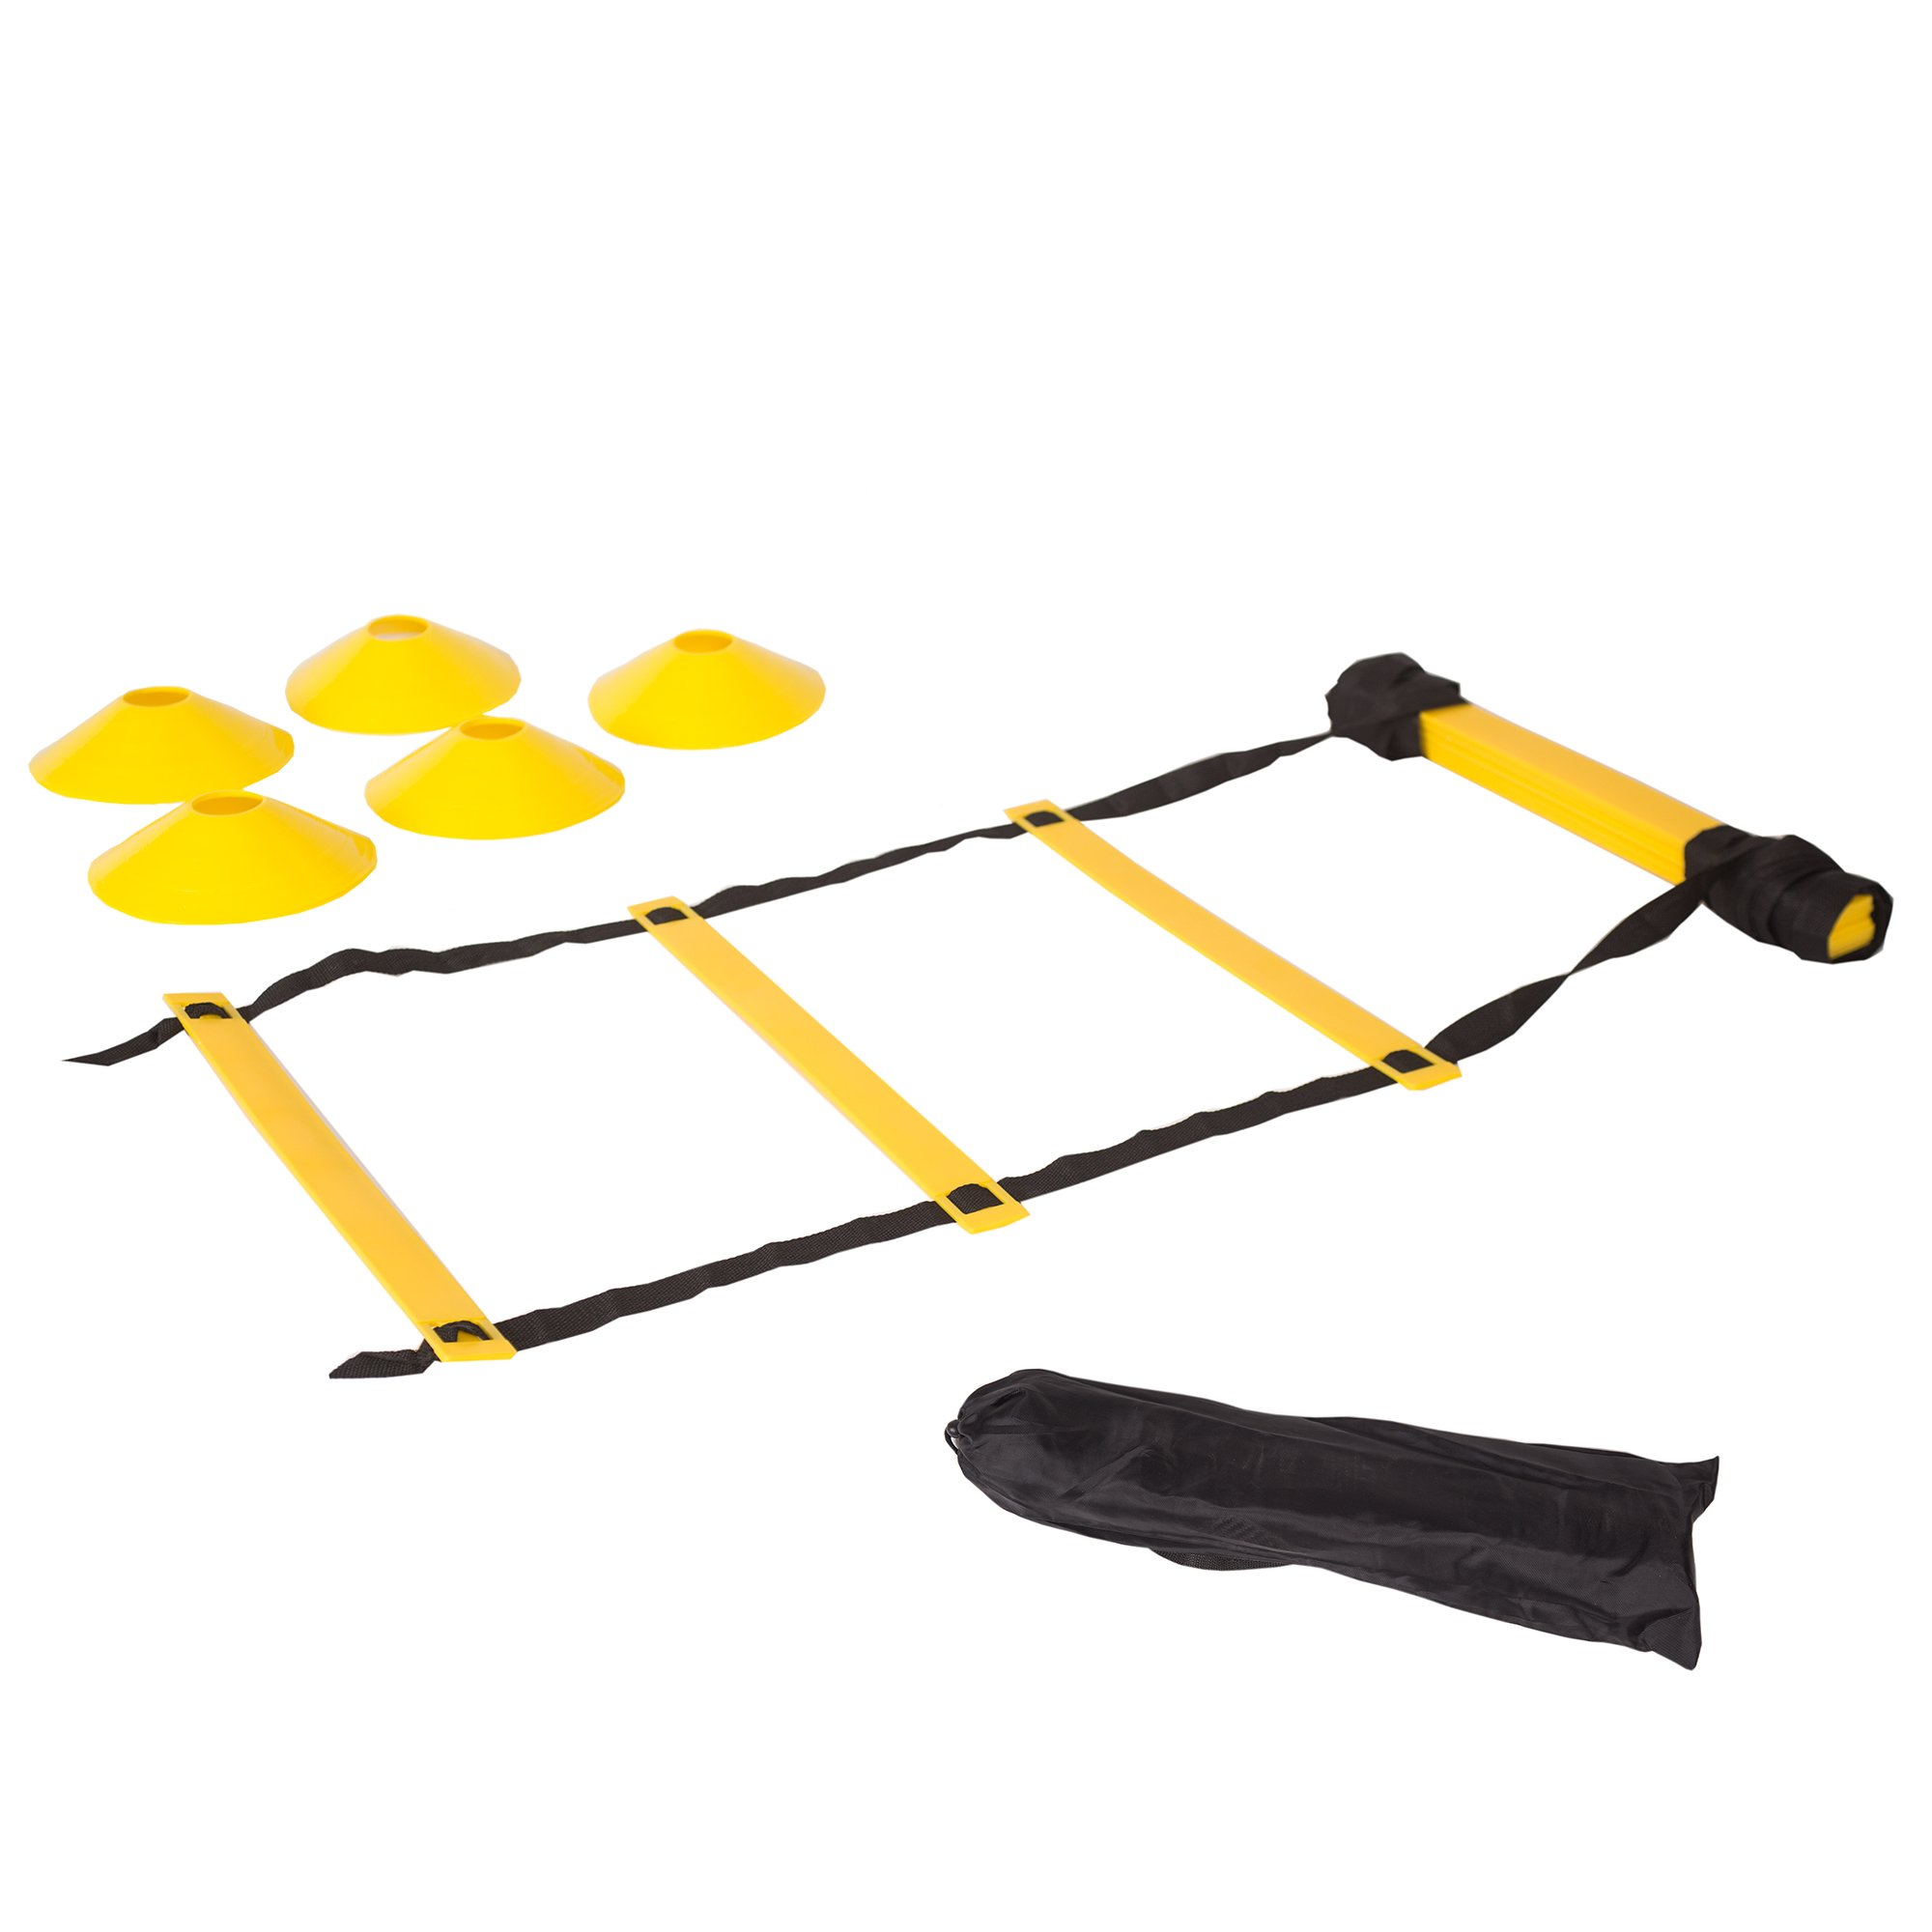 Quickness Training Equipment - Set of 15ft Speed Ladder, 10 Markers, 4 Pegs, Bag - For Faster Footwork And Better Movement Skills